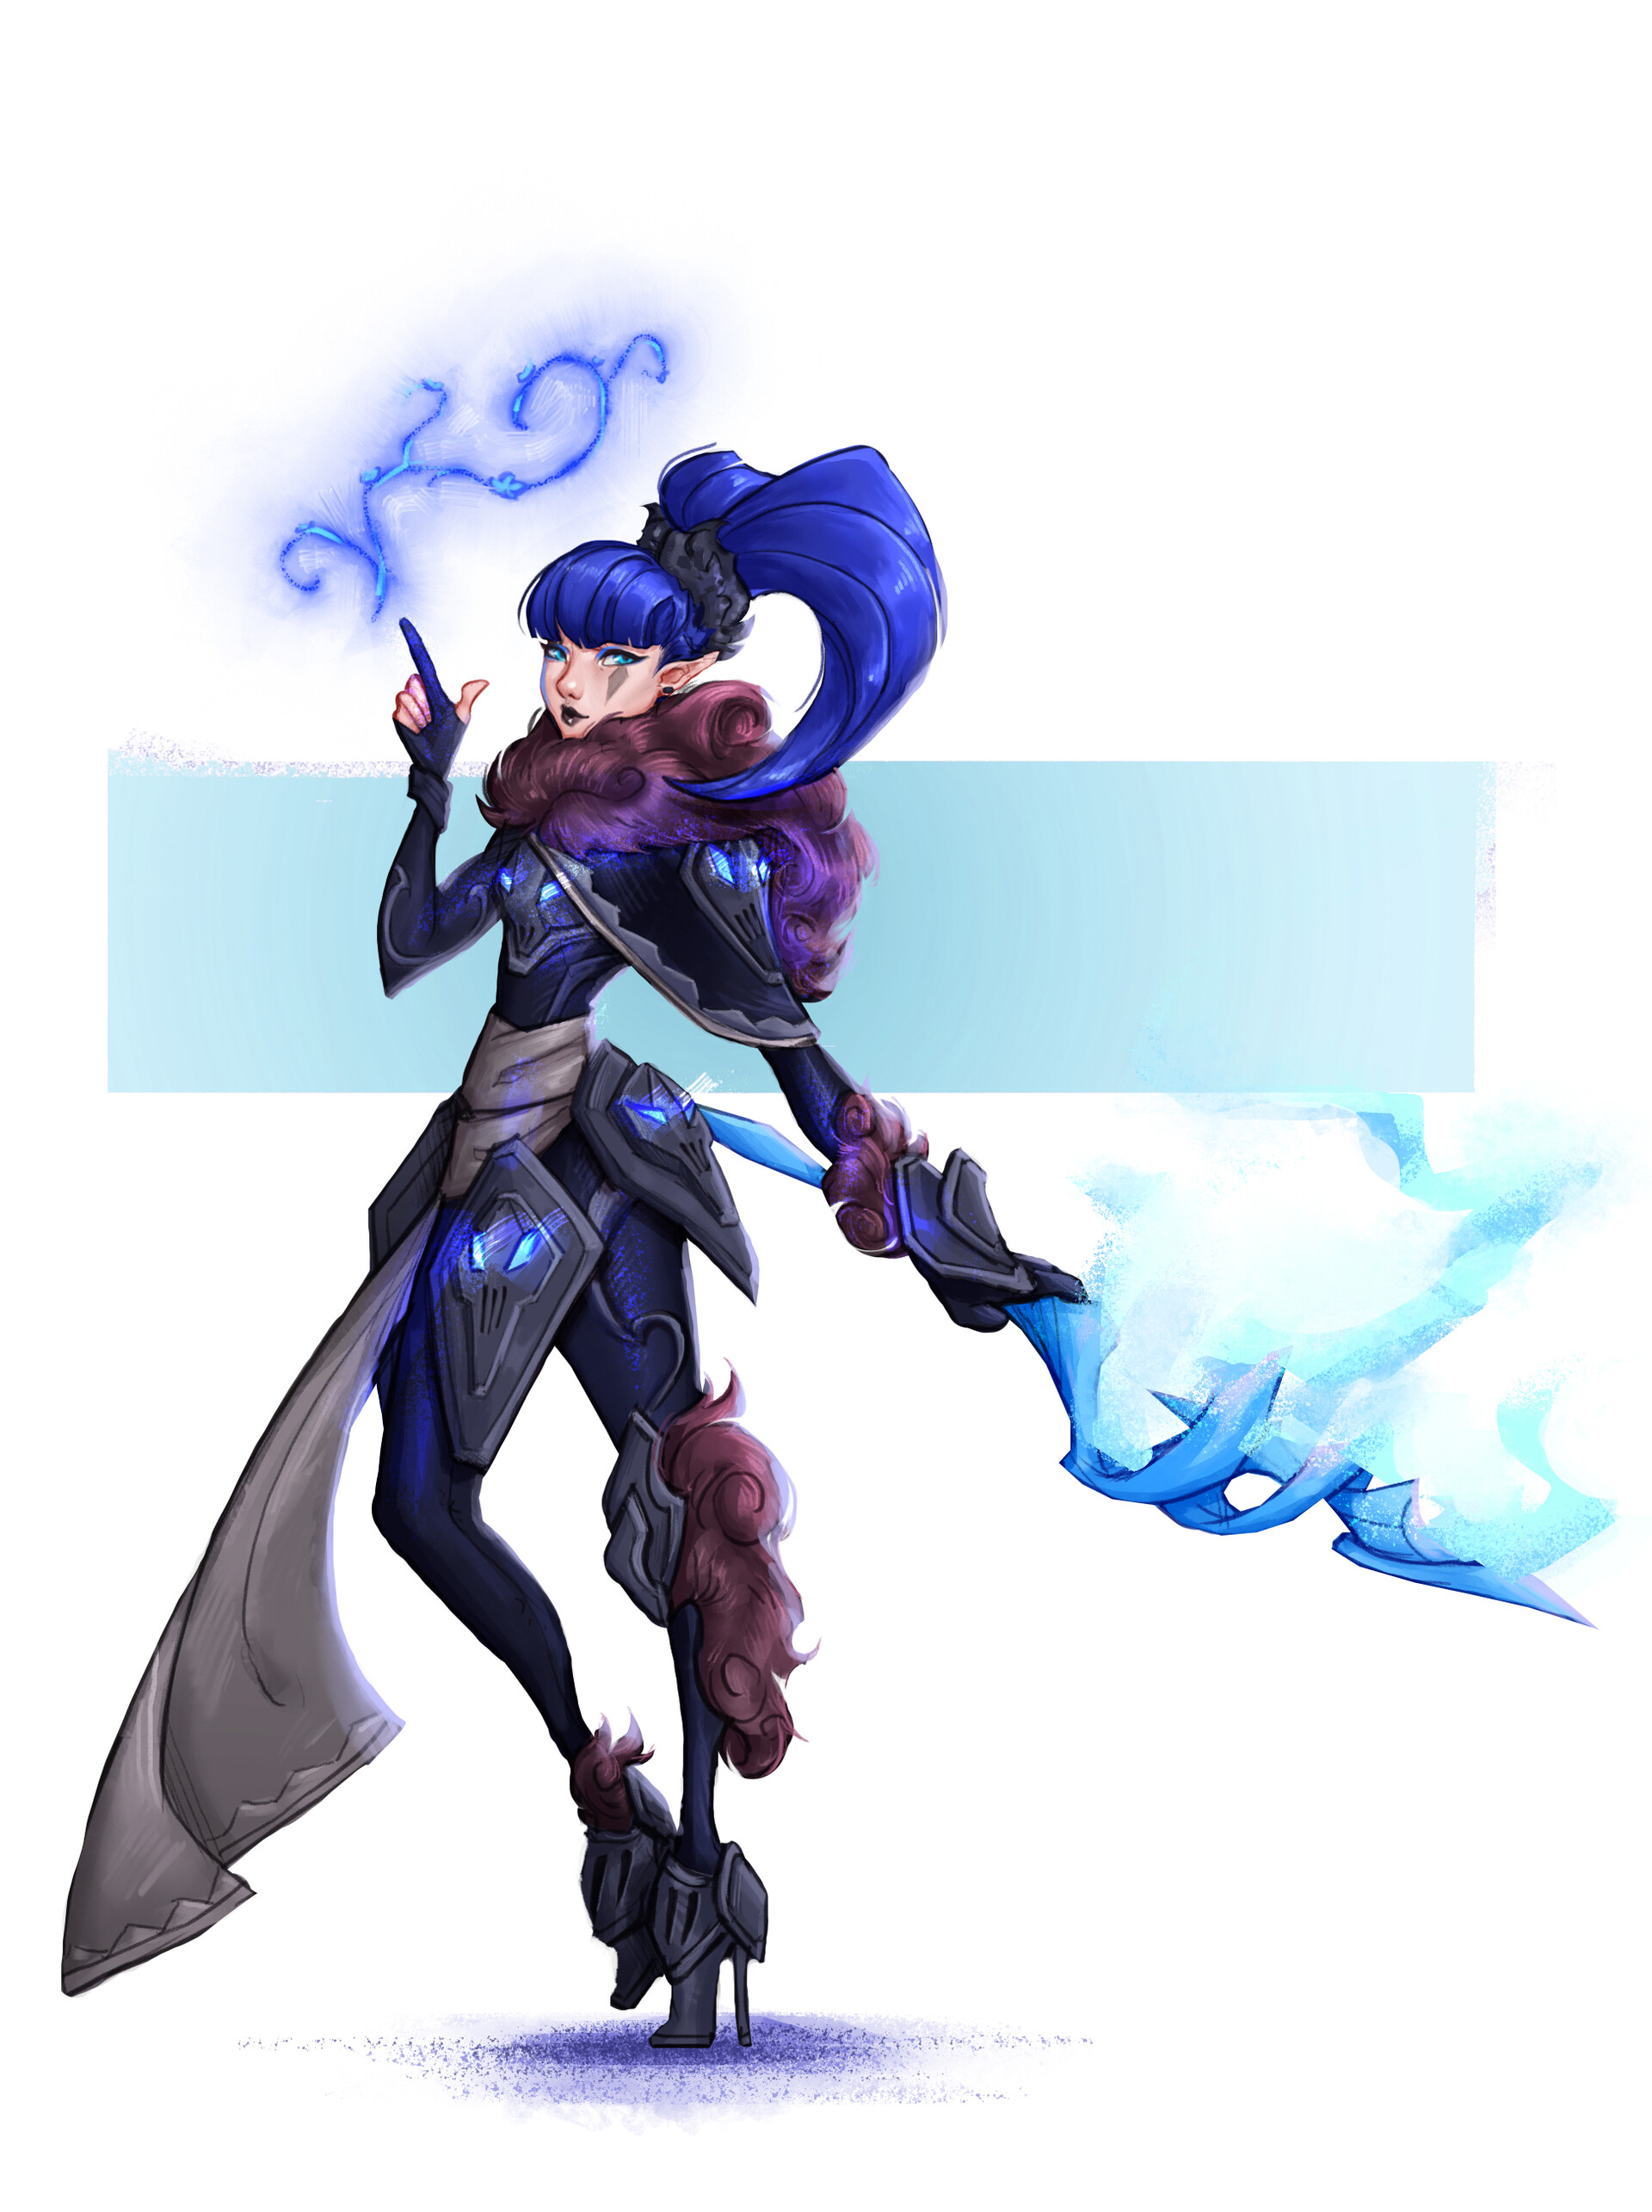 [Non-Asgaea] An edgy frost mage that can raise frozen corpses and create beautiful floral ice sculptures, who gets annoyed at her legendary scepter that doesn't match with her outfit >:(